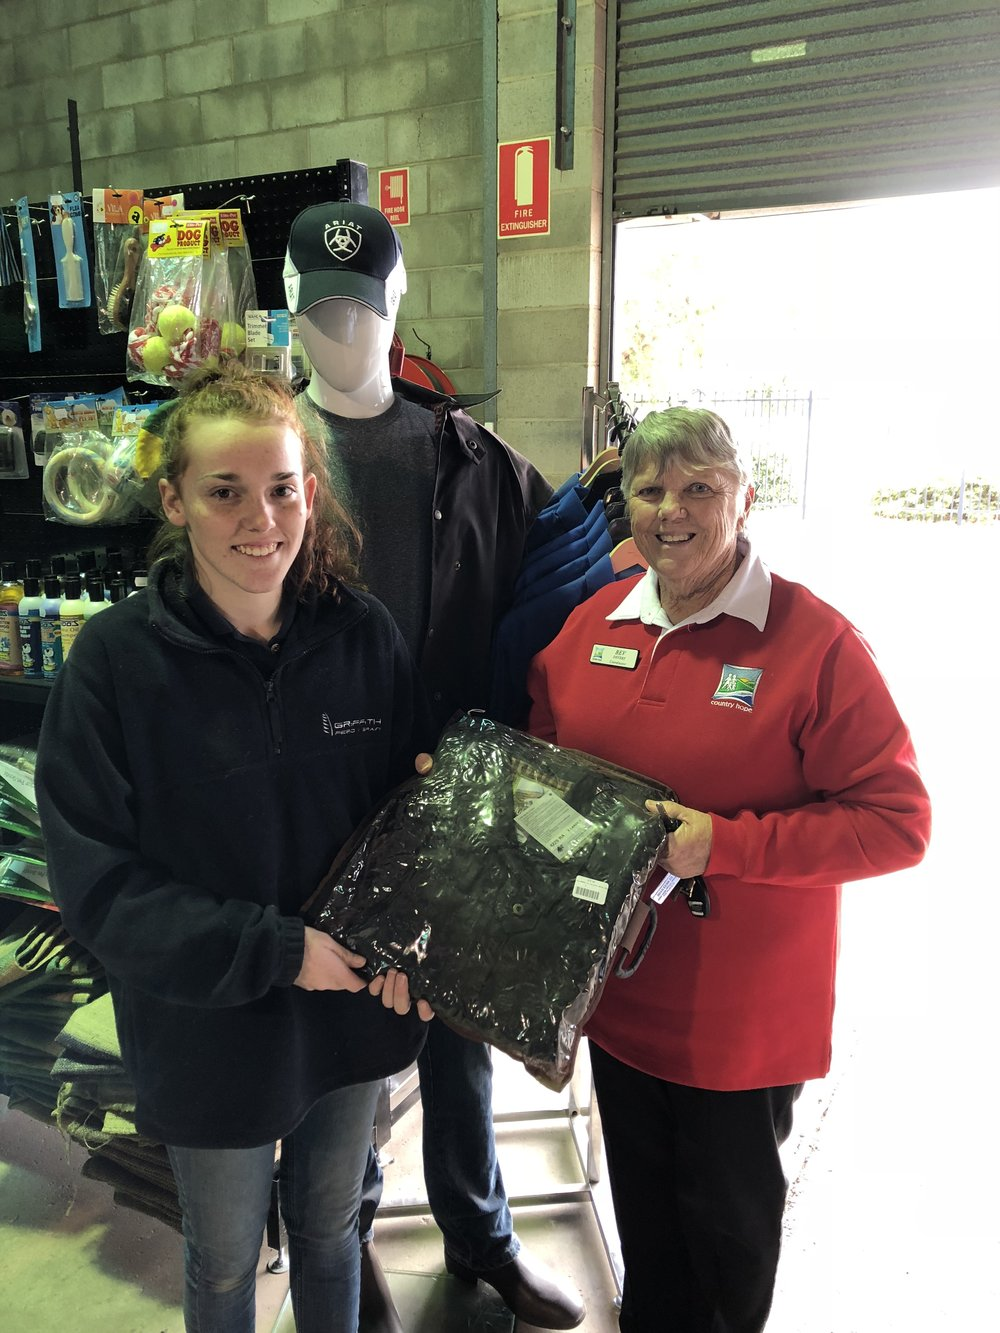 Joedee from Griffith Grain & Feed and Bev.  Joedee from Griffith Grain & Feed handing over the Nullarbor Coat for the raffle at the Murrumbidgee Country Music Festival, Griffith Fundraising Group thanks them for a very generous donation.